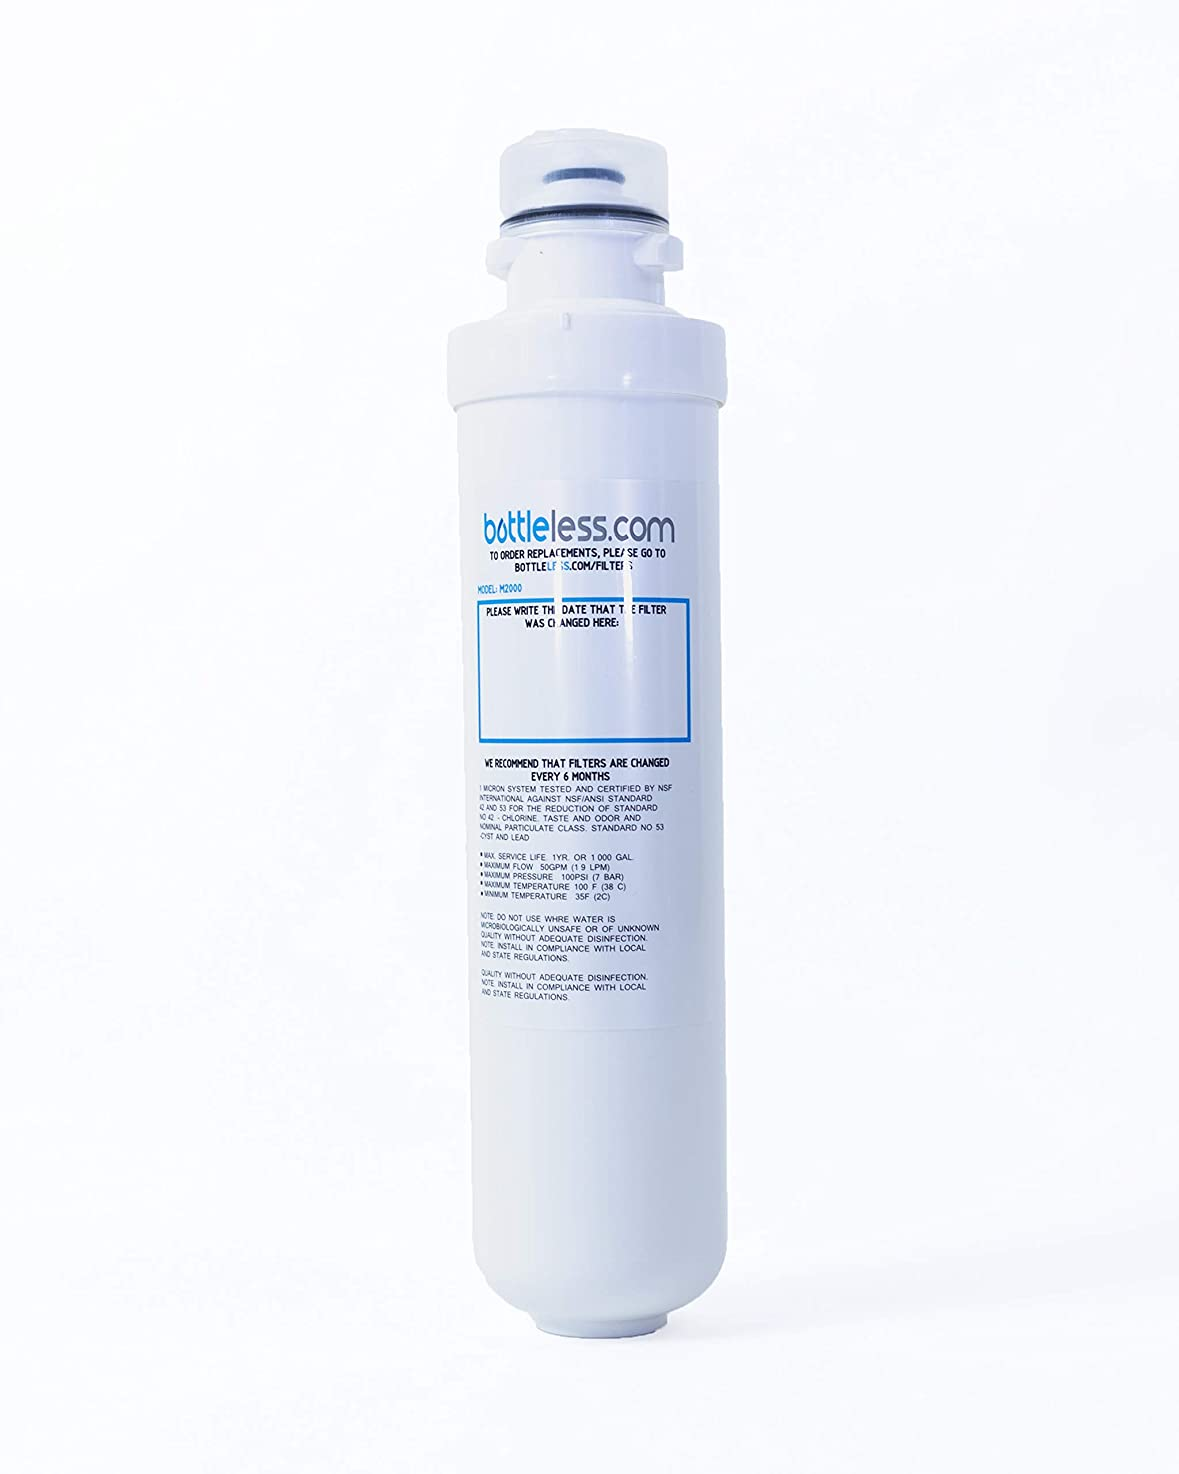 M2000 Replacement Filter for Bottleless Water Coolers